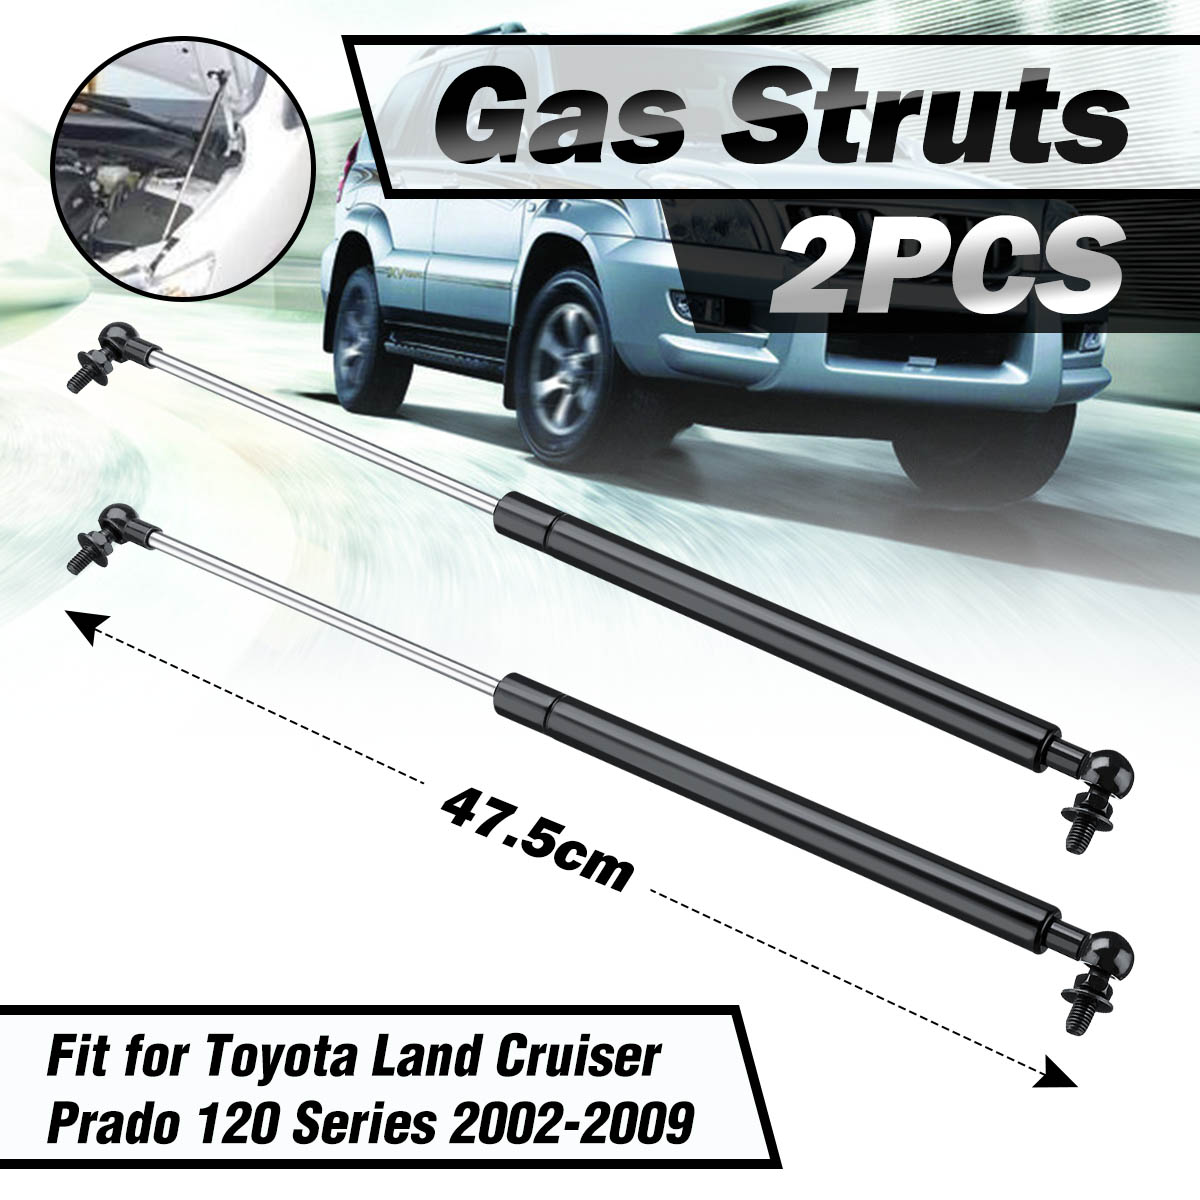 1Pair  Bonnet Hood Gas Struts Support for Toyota Land Cruiser Prado 120 Series 02-09 Steel 47.5cm Replacement Safe Convenient1Pair  Bonnet Hood Gas Struts Support for Toyota Land Cruiser Prado 120 Series 02-09 Steel 47.5cm Replacement Safe Convenient